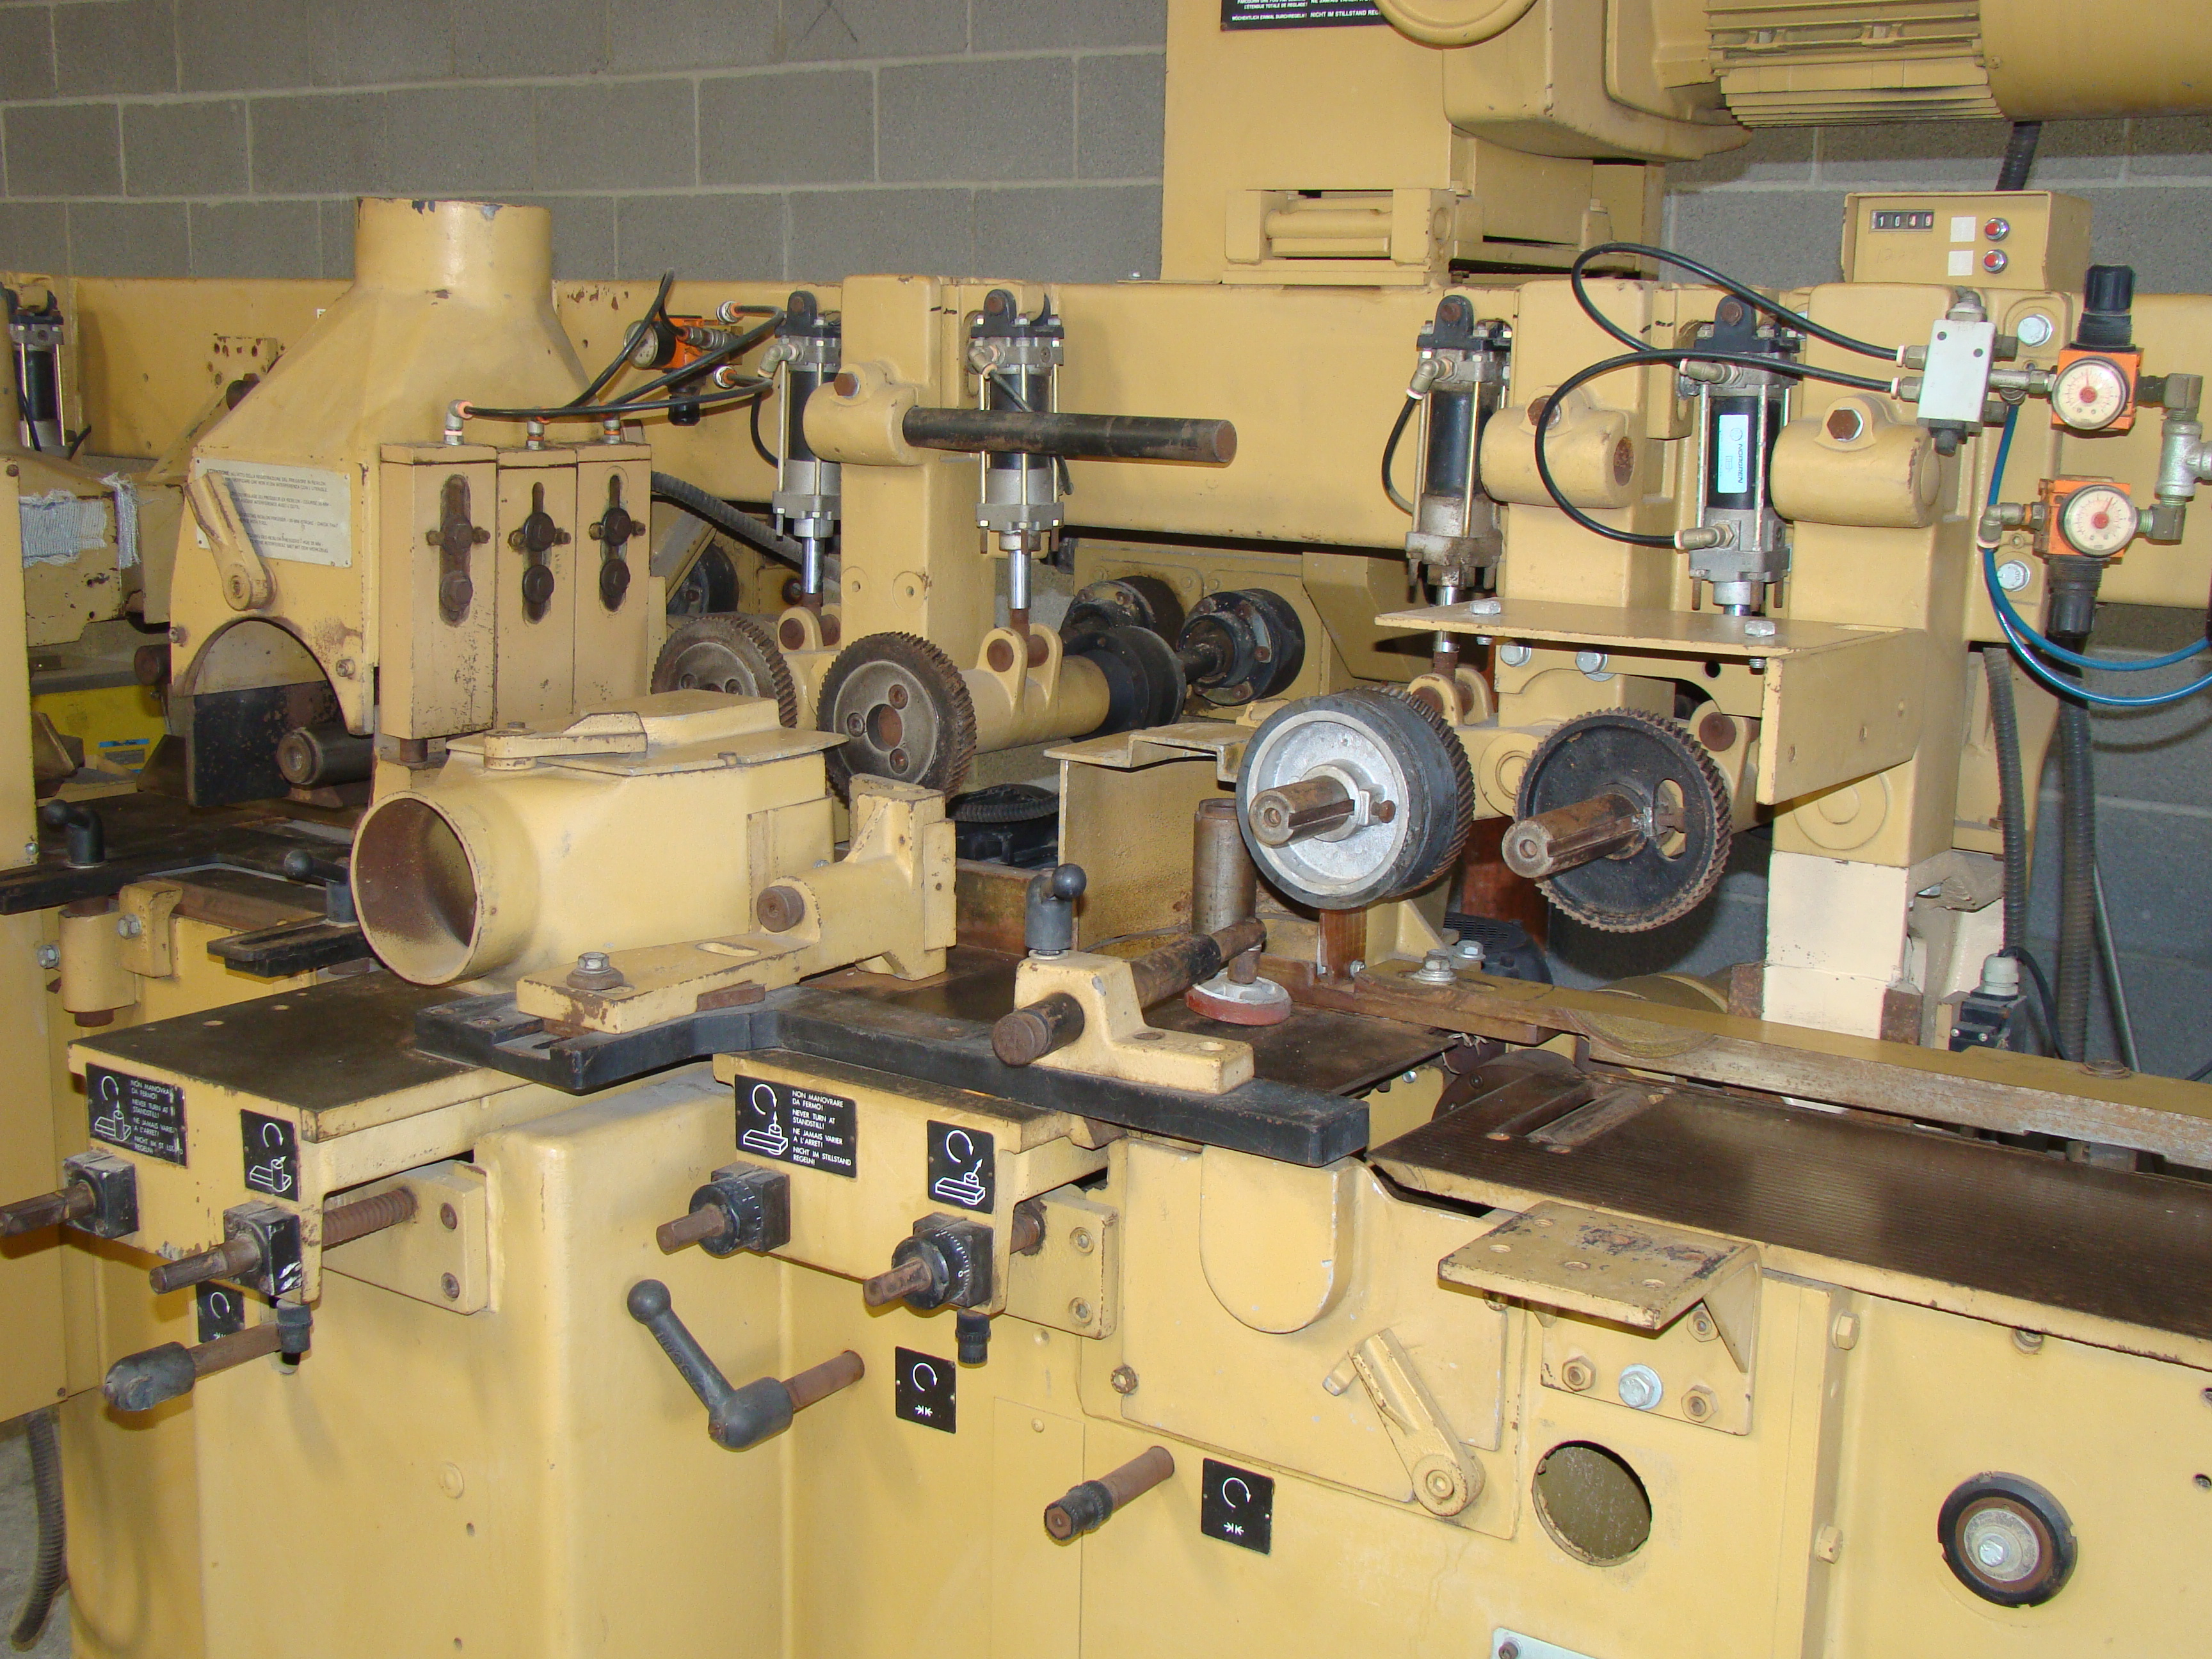 """SCMi 9"""" Wood Moulder, Model: P230 5 Head 6.6HP 220/440 Volts 3Phase - Image 2 of 14"""